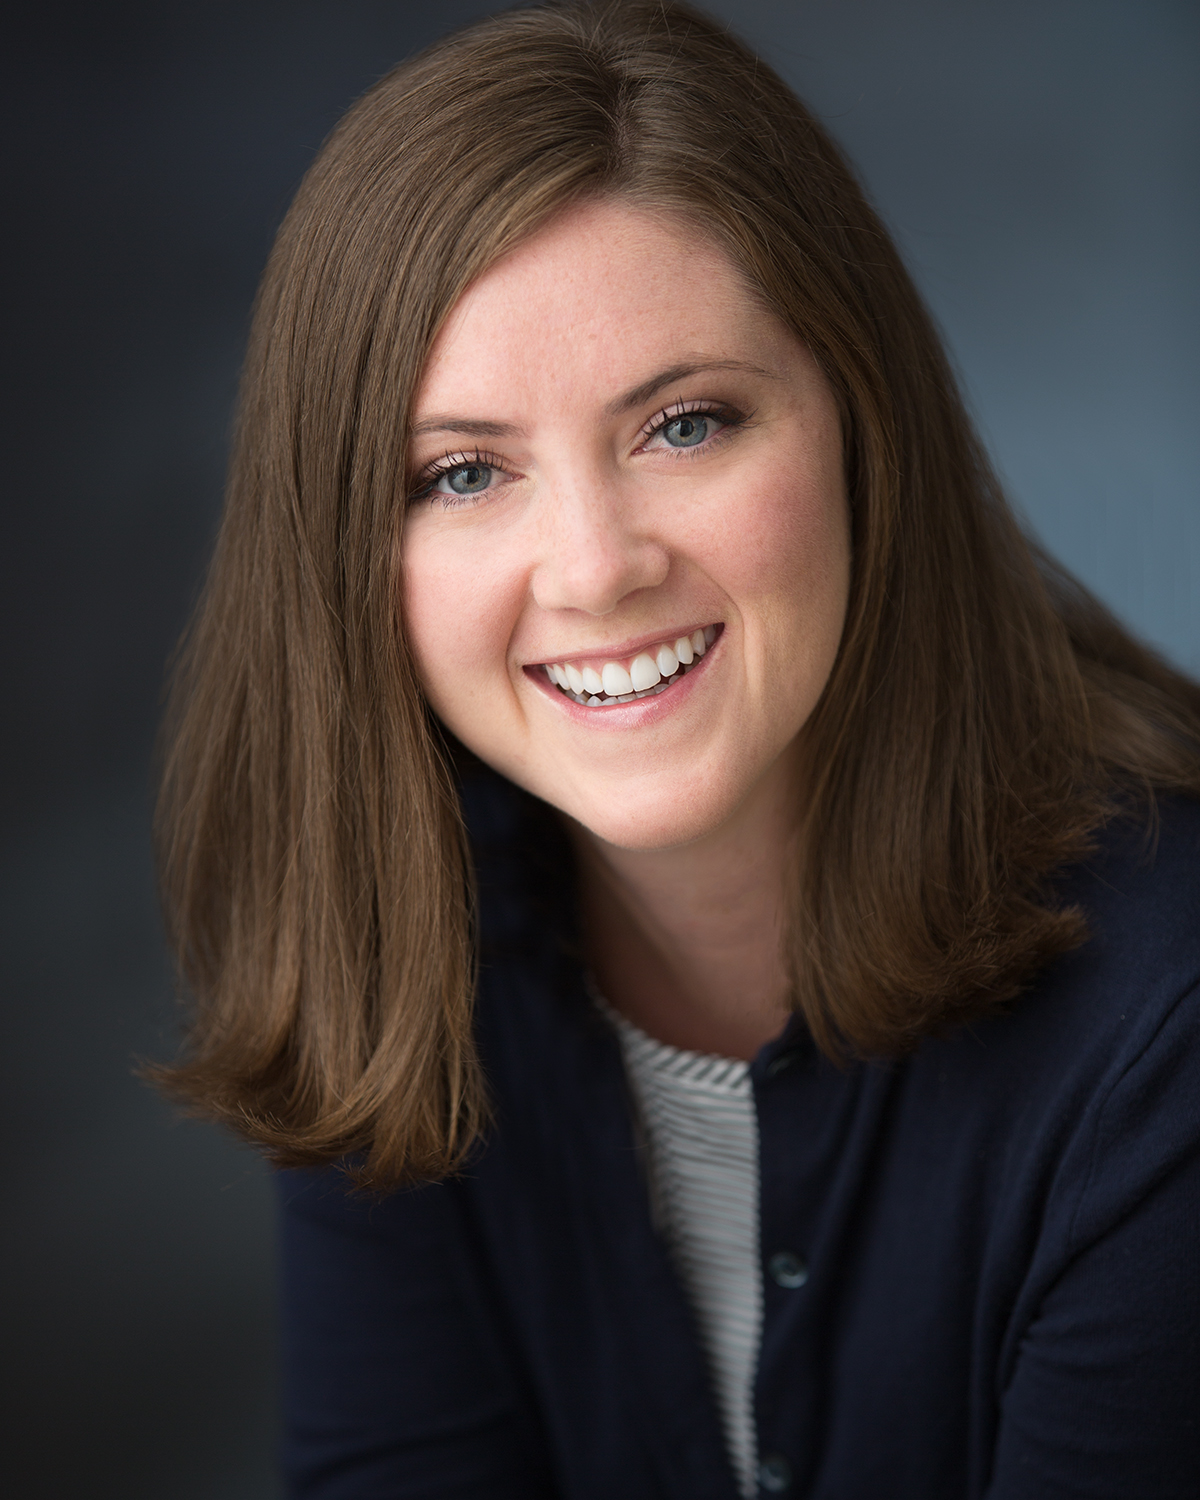 Janelle Potts, CNM, MS - Nurse-Midwife, Obstetrics and Gynecology, Portland, OR